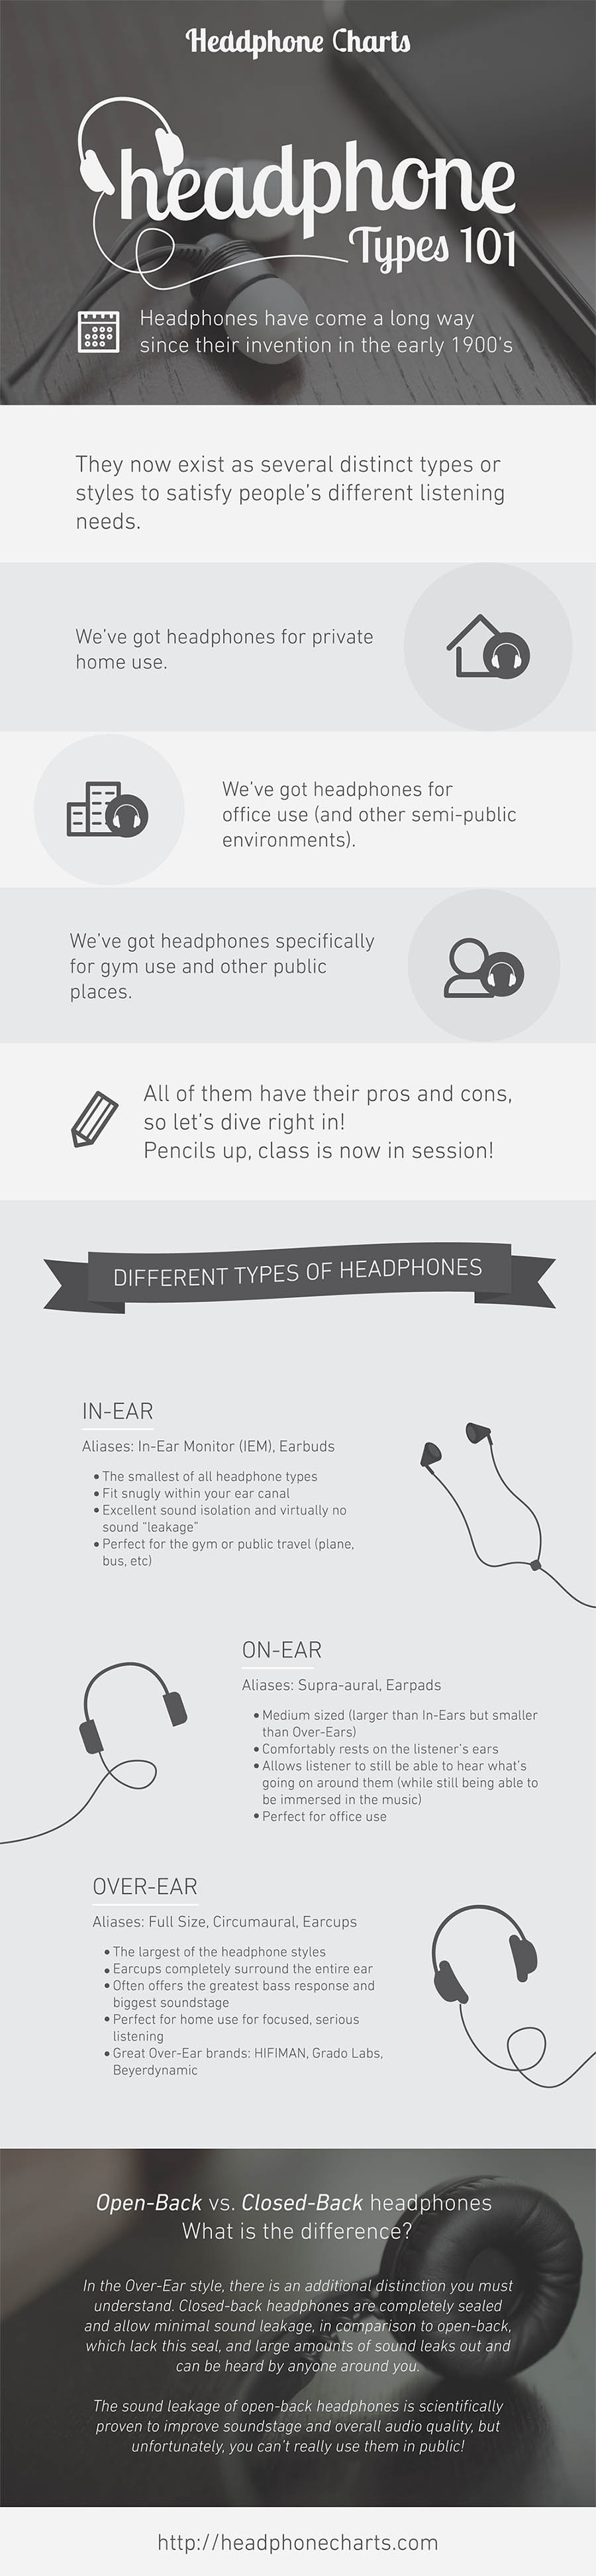 Different types of Headphones - Infographic